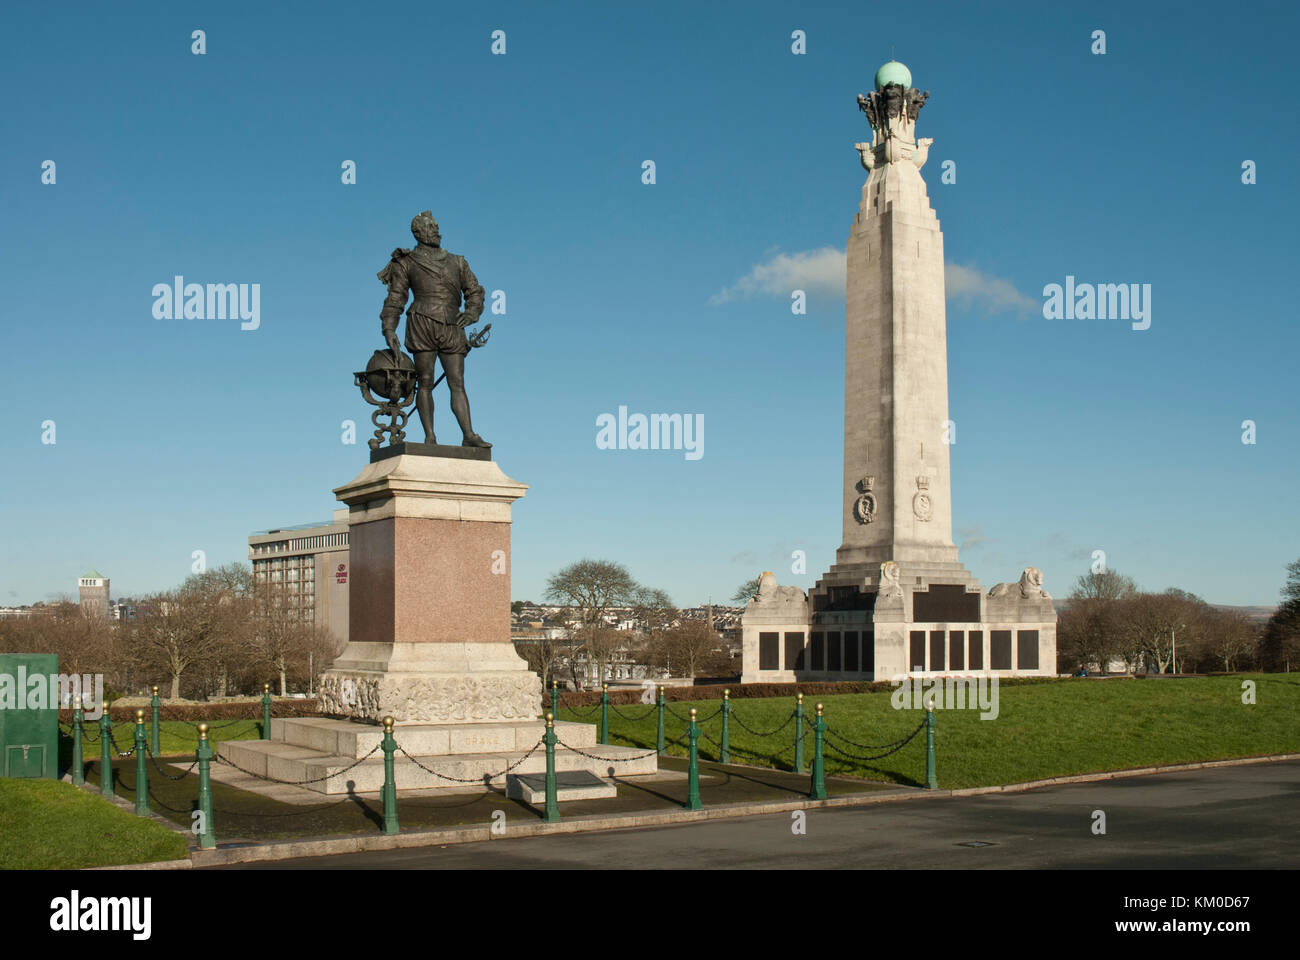 Against blue skies the monuments to Sir Francis Drake, Elizabethan hero, and an obelisk to the Naval casualties - Stock Image